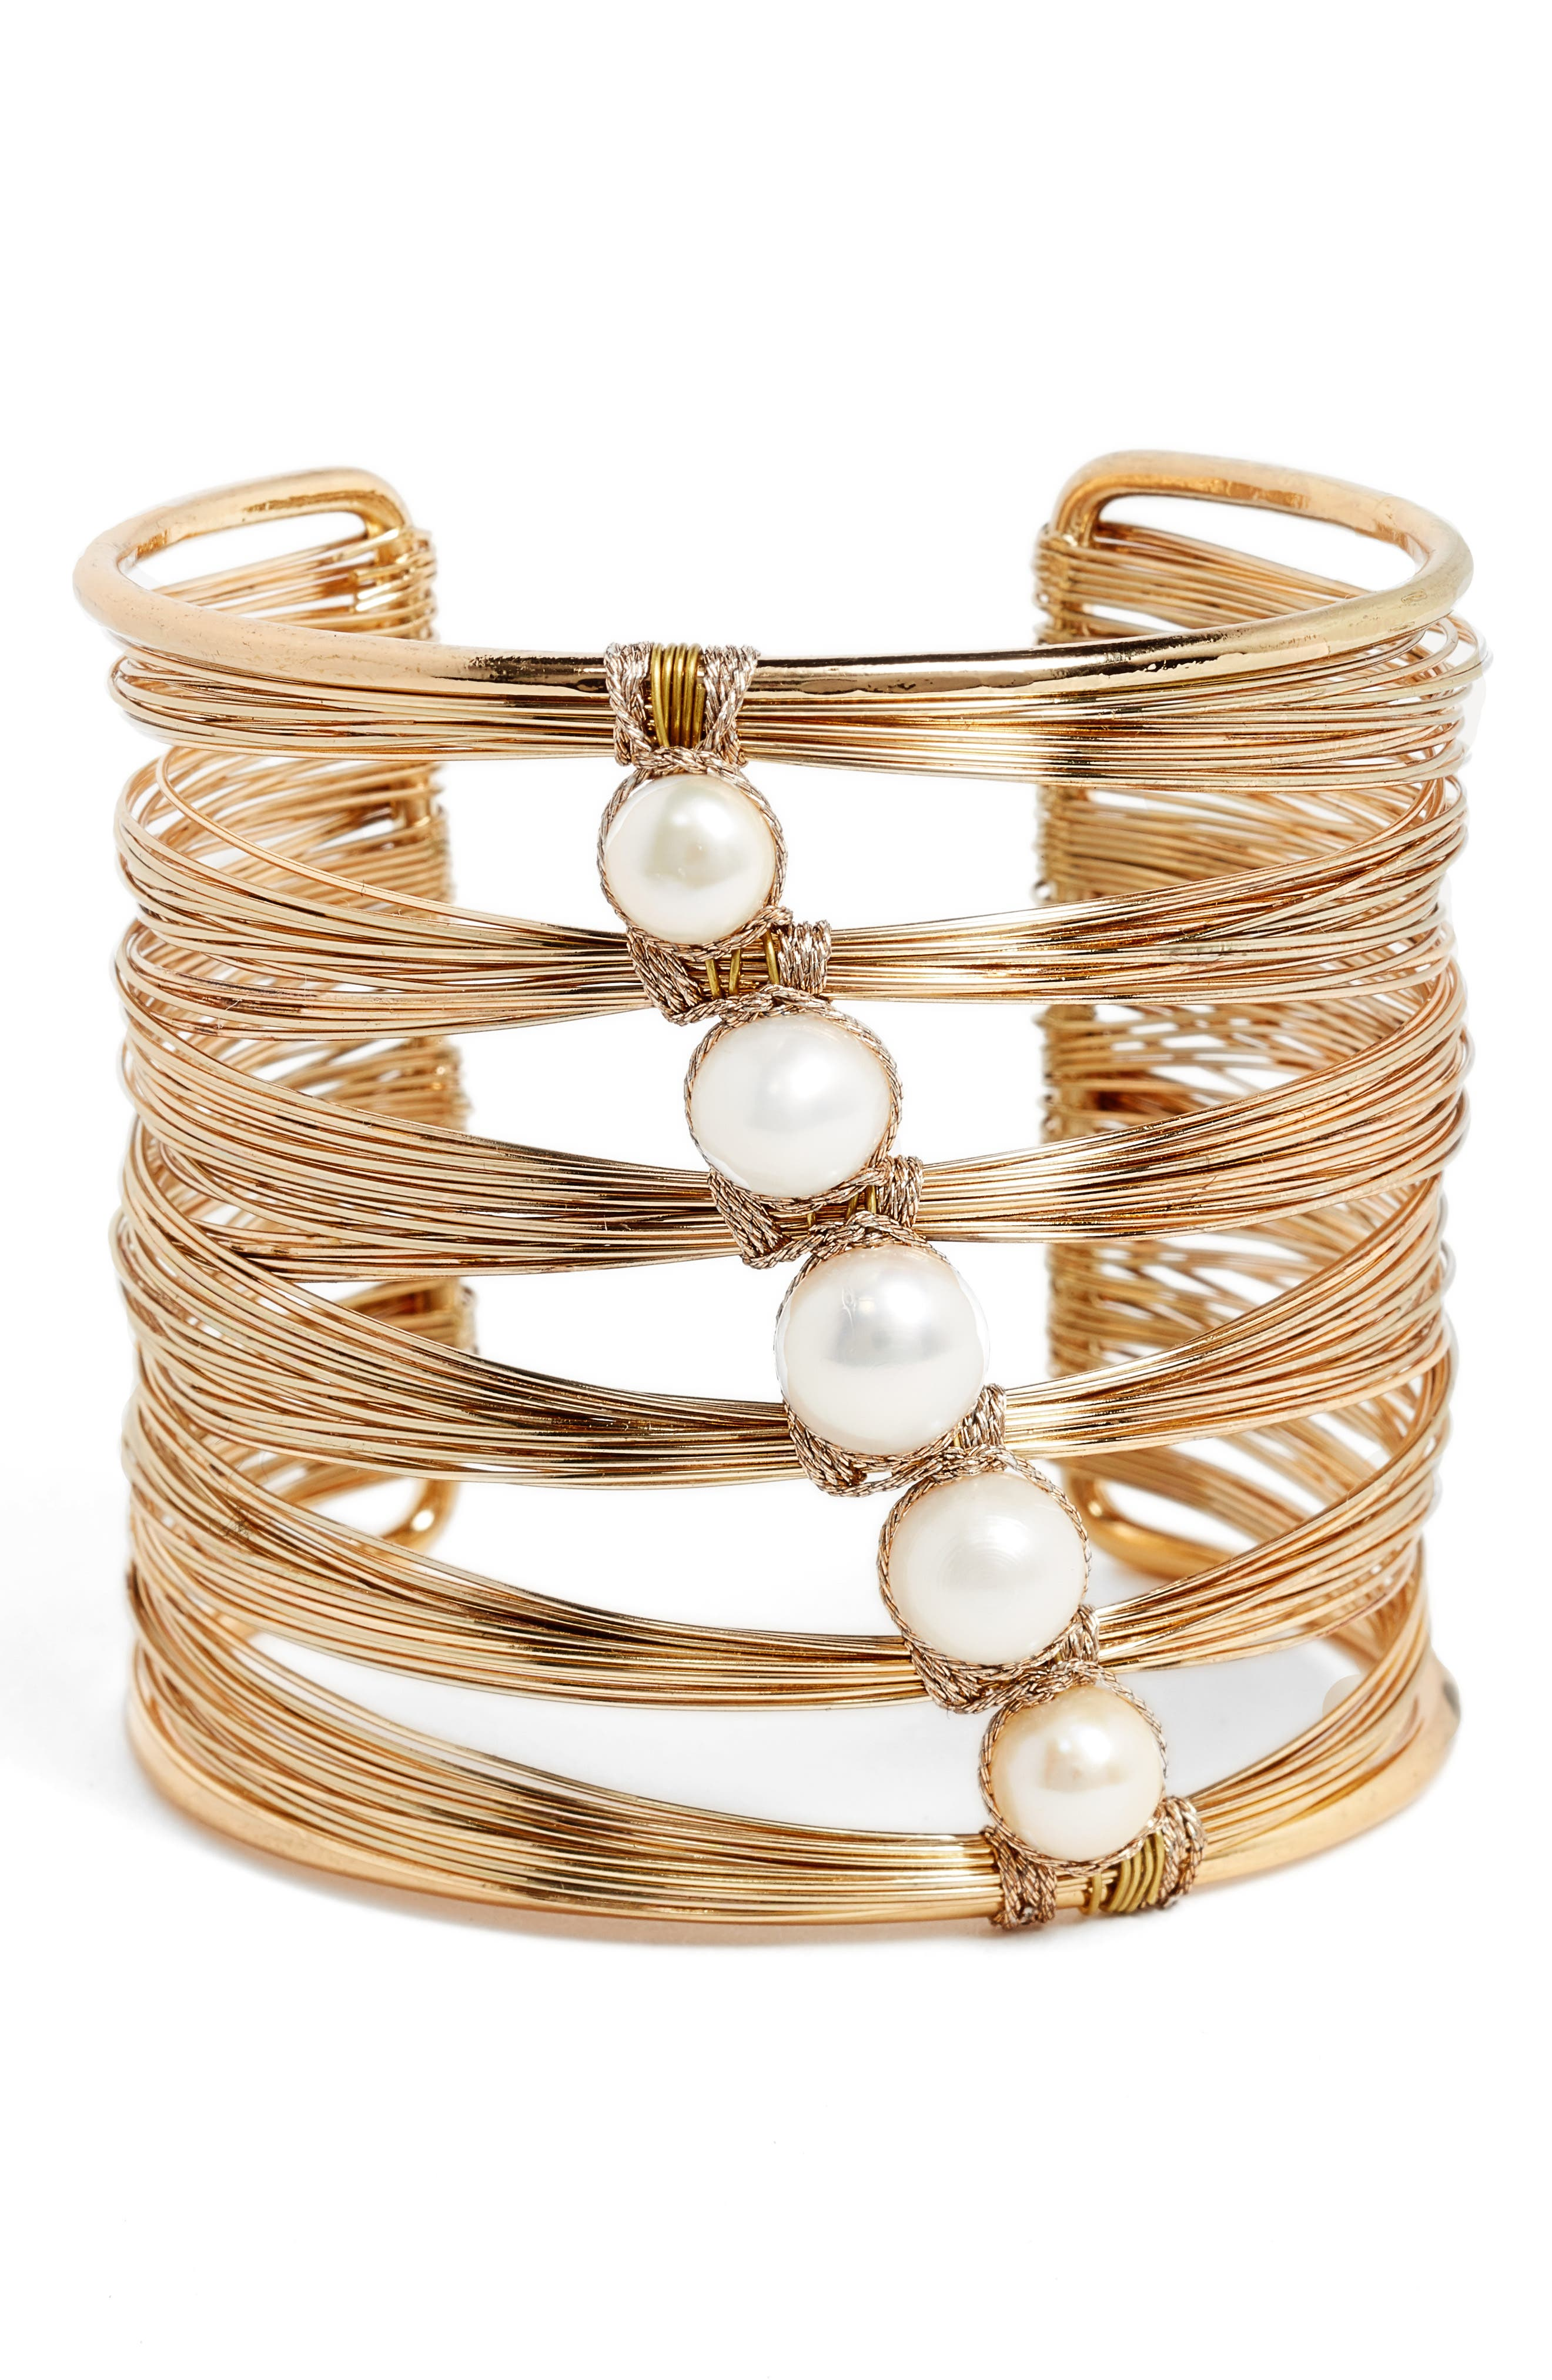 Freshwater Pearl Wire Cuff,                             Main thumbnail 1, color,                             Gold